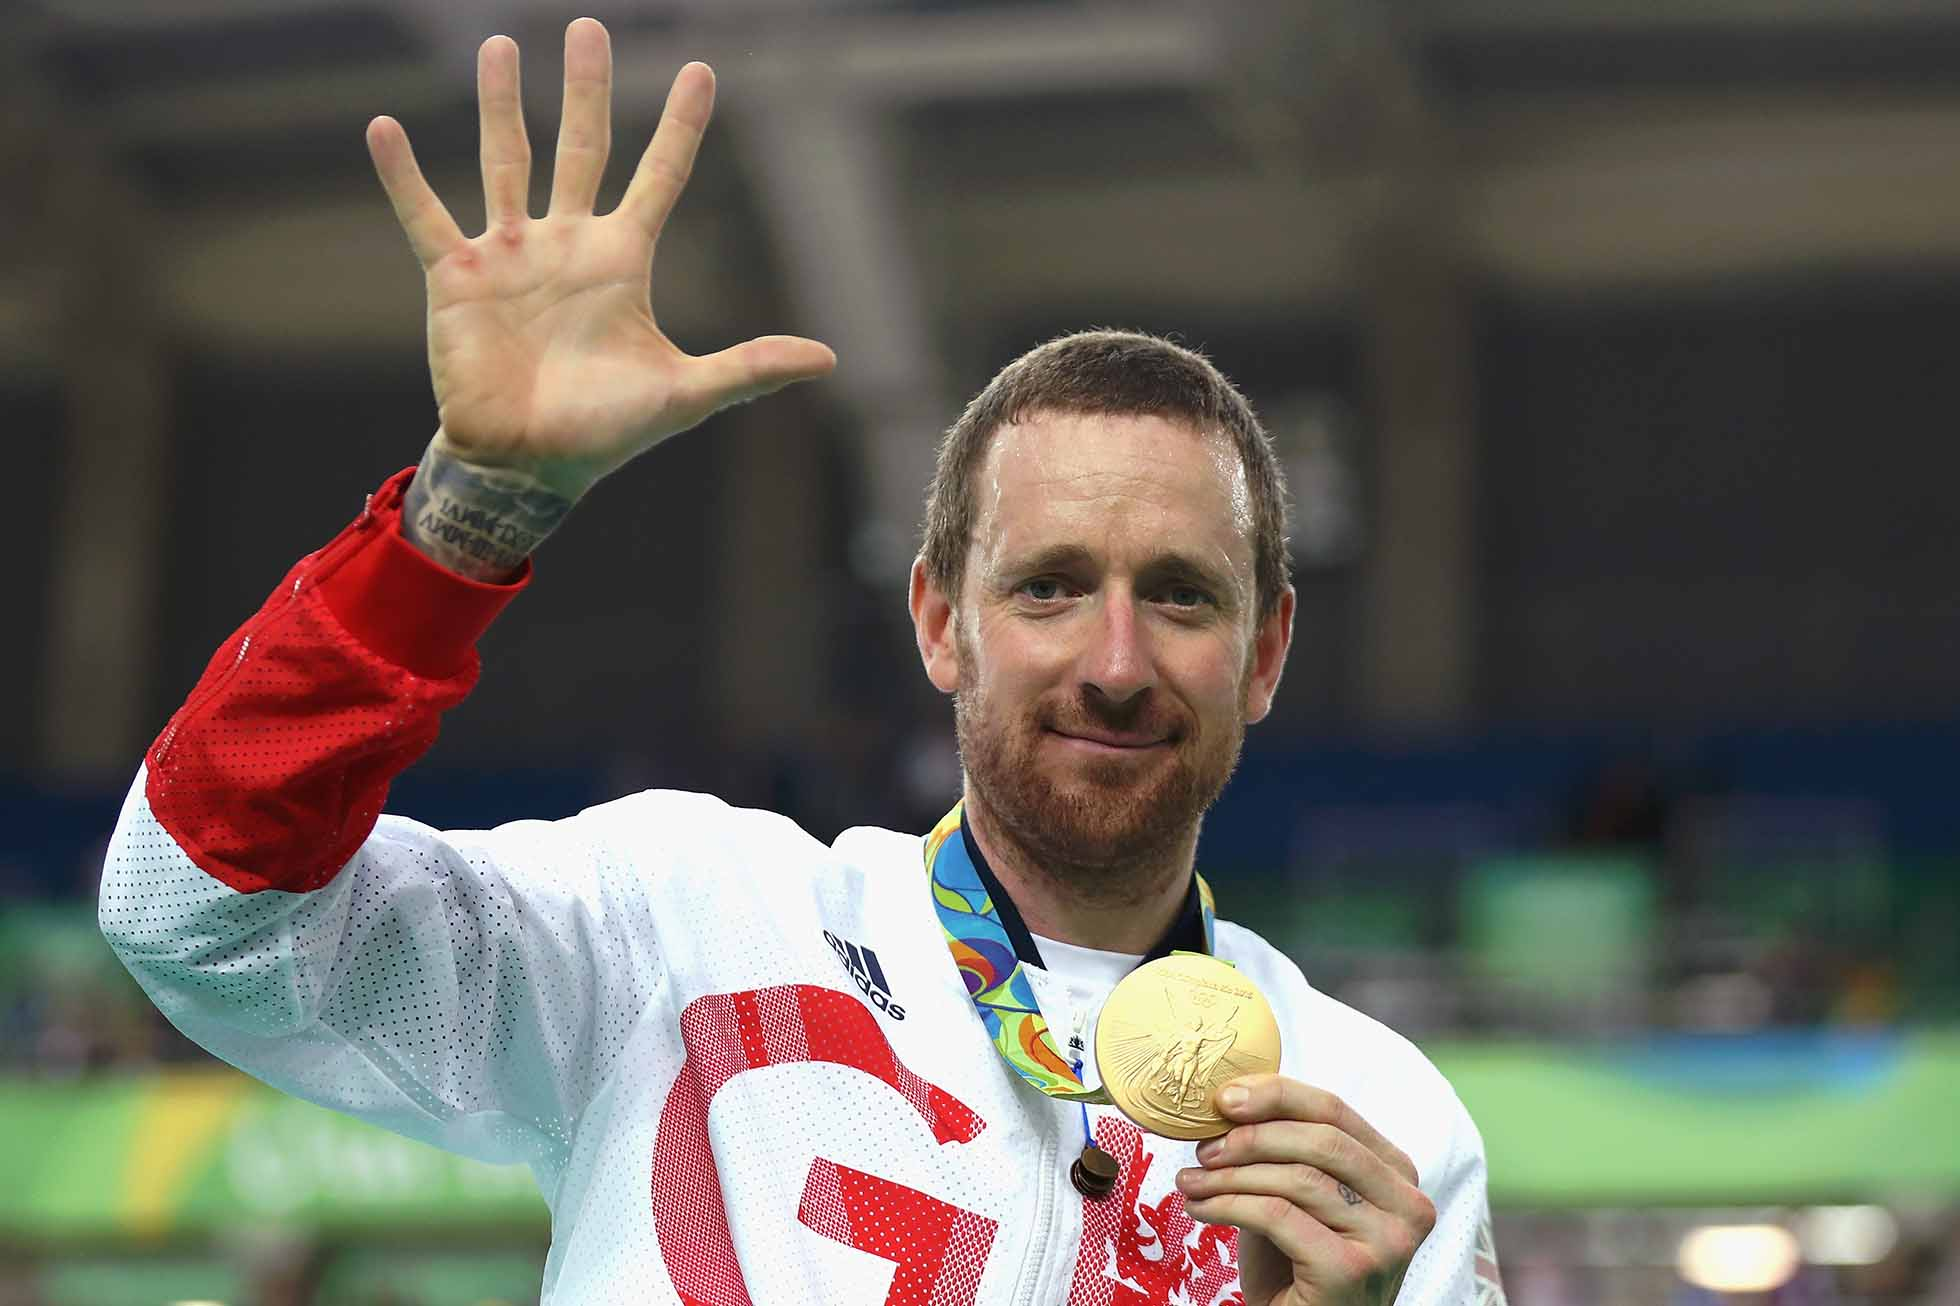 RIO DE JANEIRO, BRAZIL - AUGUST 12: Gold medalist Bradley Wiggins of Team Great Britain poses for photographs with his fifth gold medal in his career after at the medal ceremony for the Men's Team Pursuit on Day 7 of the Rio 2016 Olympic Games at the Rio Olympic Velodrome on August 12, 2016 in Rio de Janeiro, Brazil. (Photo by Bryn Lennon/Getty Images)